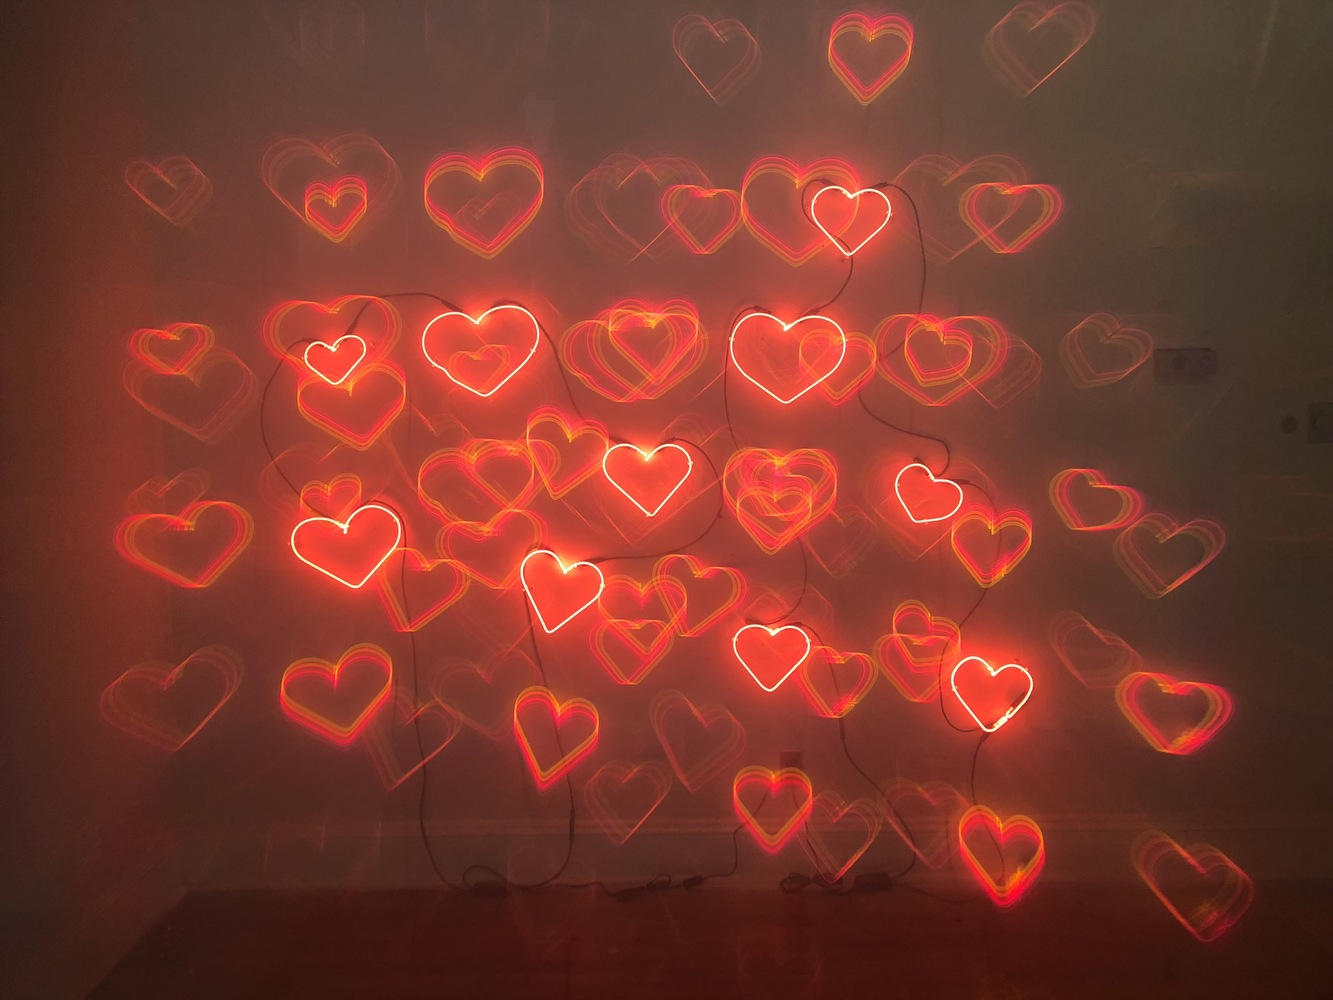 Hollow Boom Exhibition Neon Hearts in Diffraction